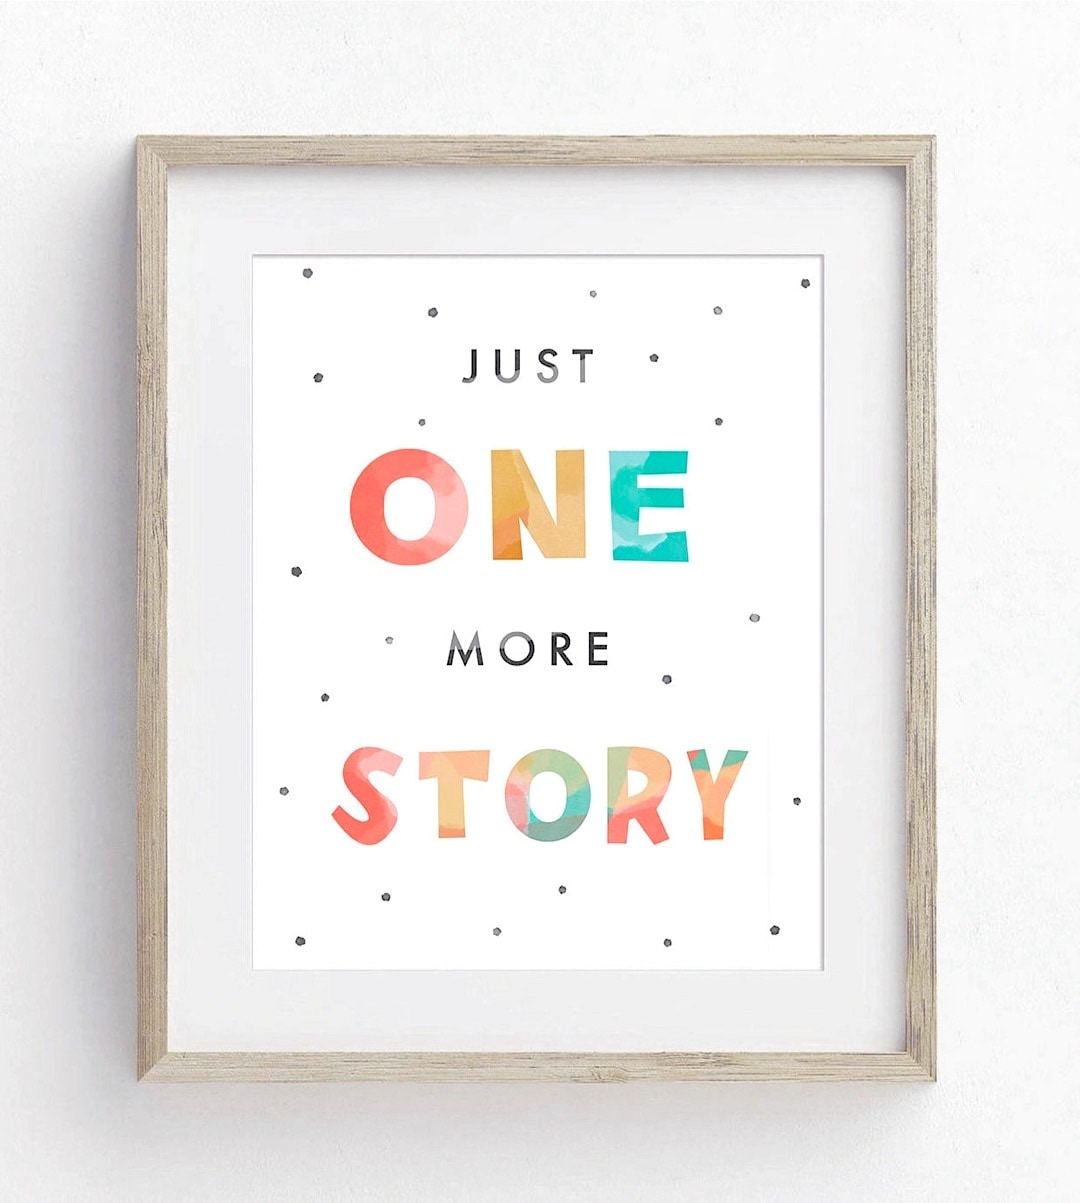 Just one more story - best read posters